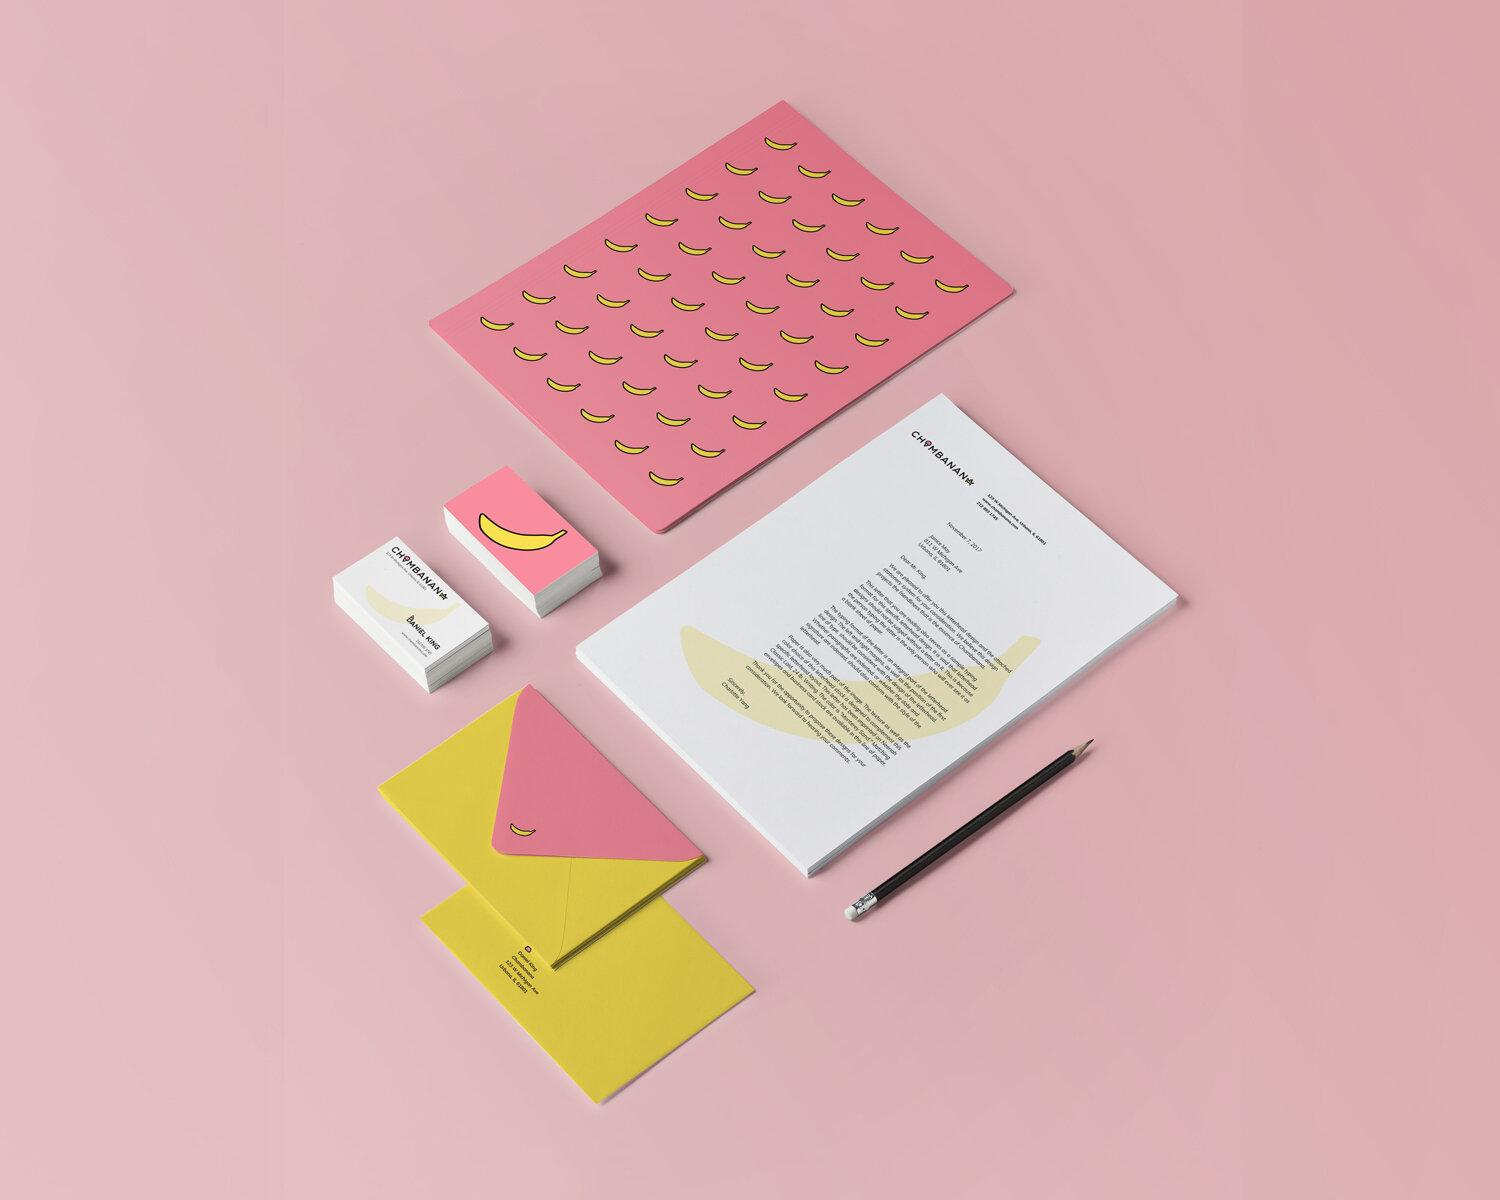 Pink background with business cards and stationery. The project is a brand concept for a fictional ice cream shop with innovative typography that incorporates ice cream images in the letters.